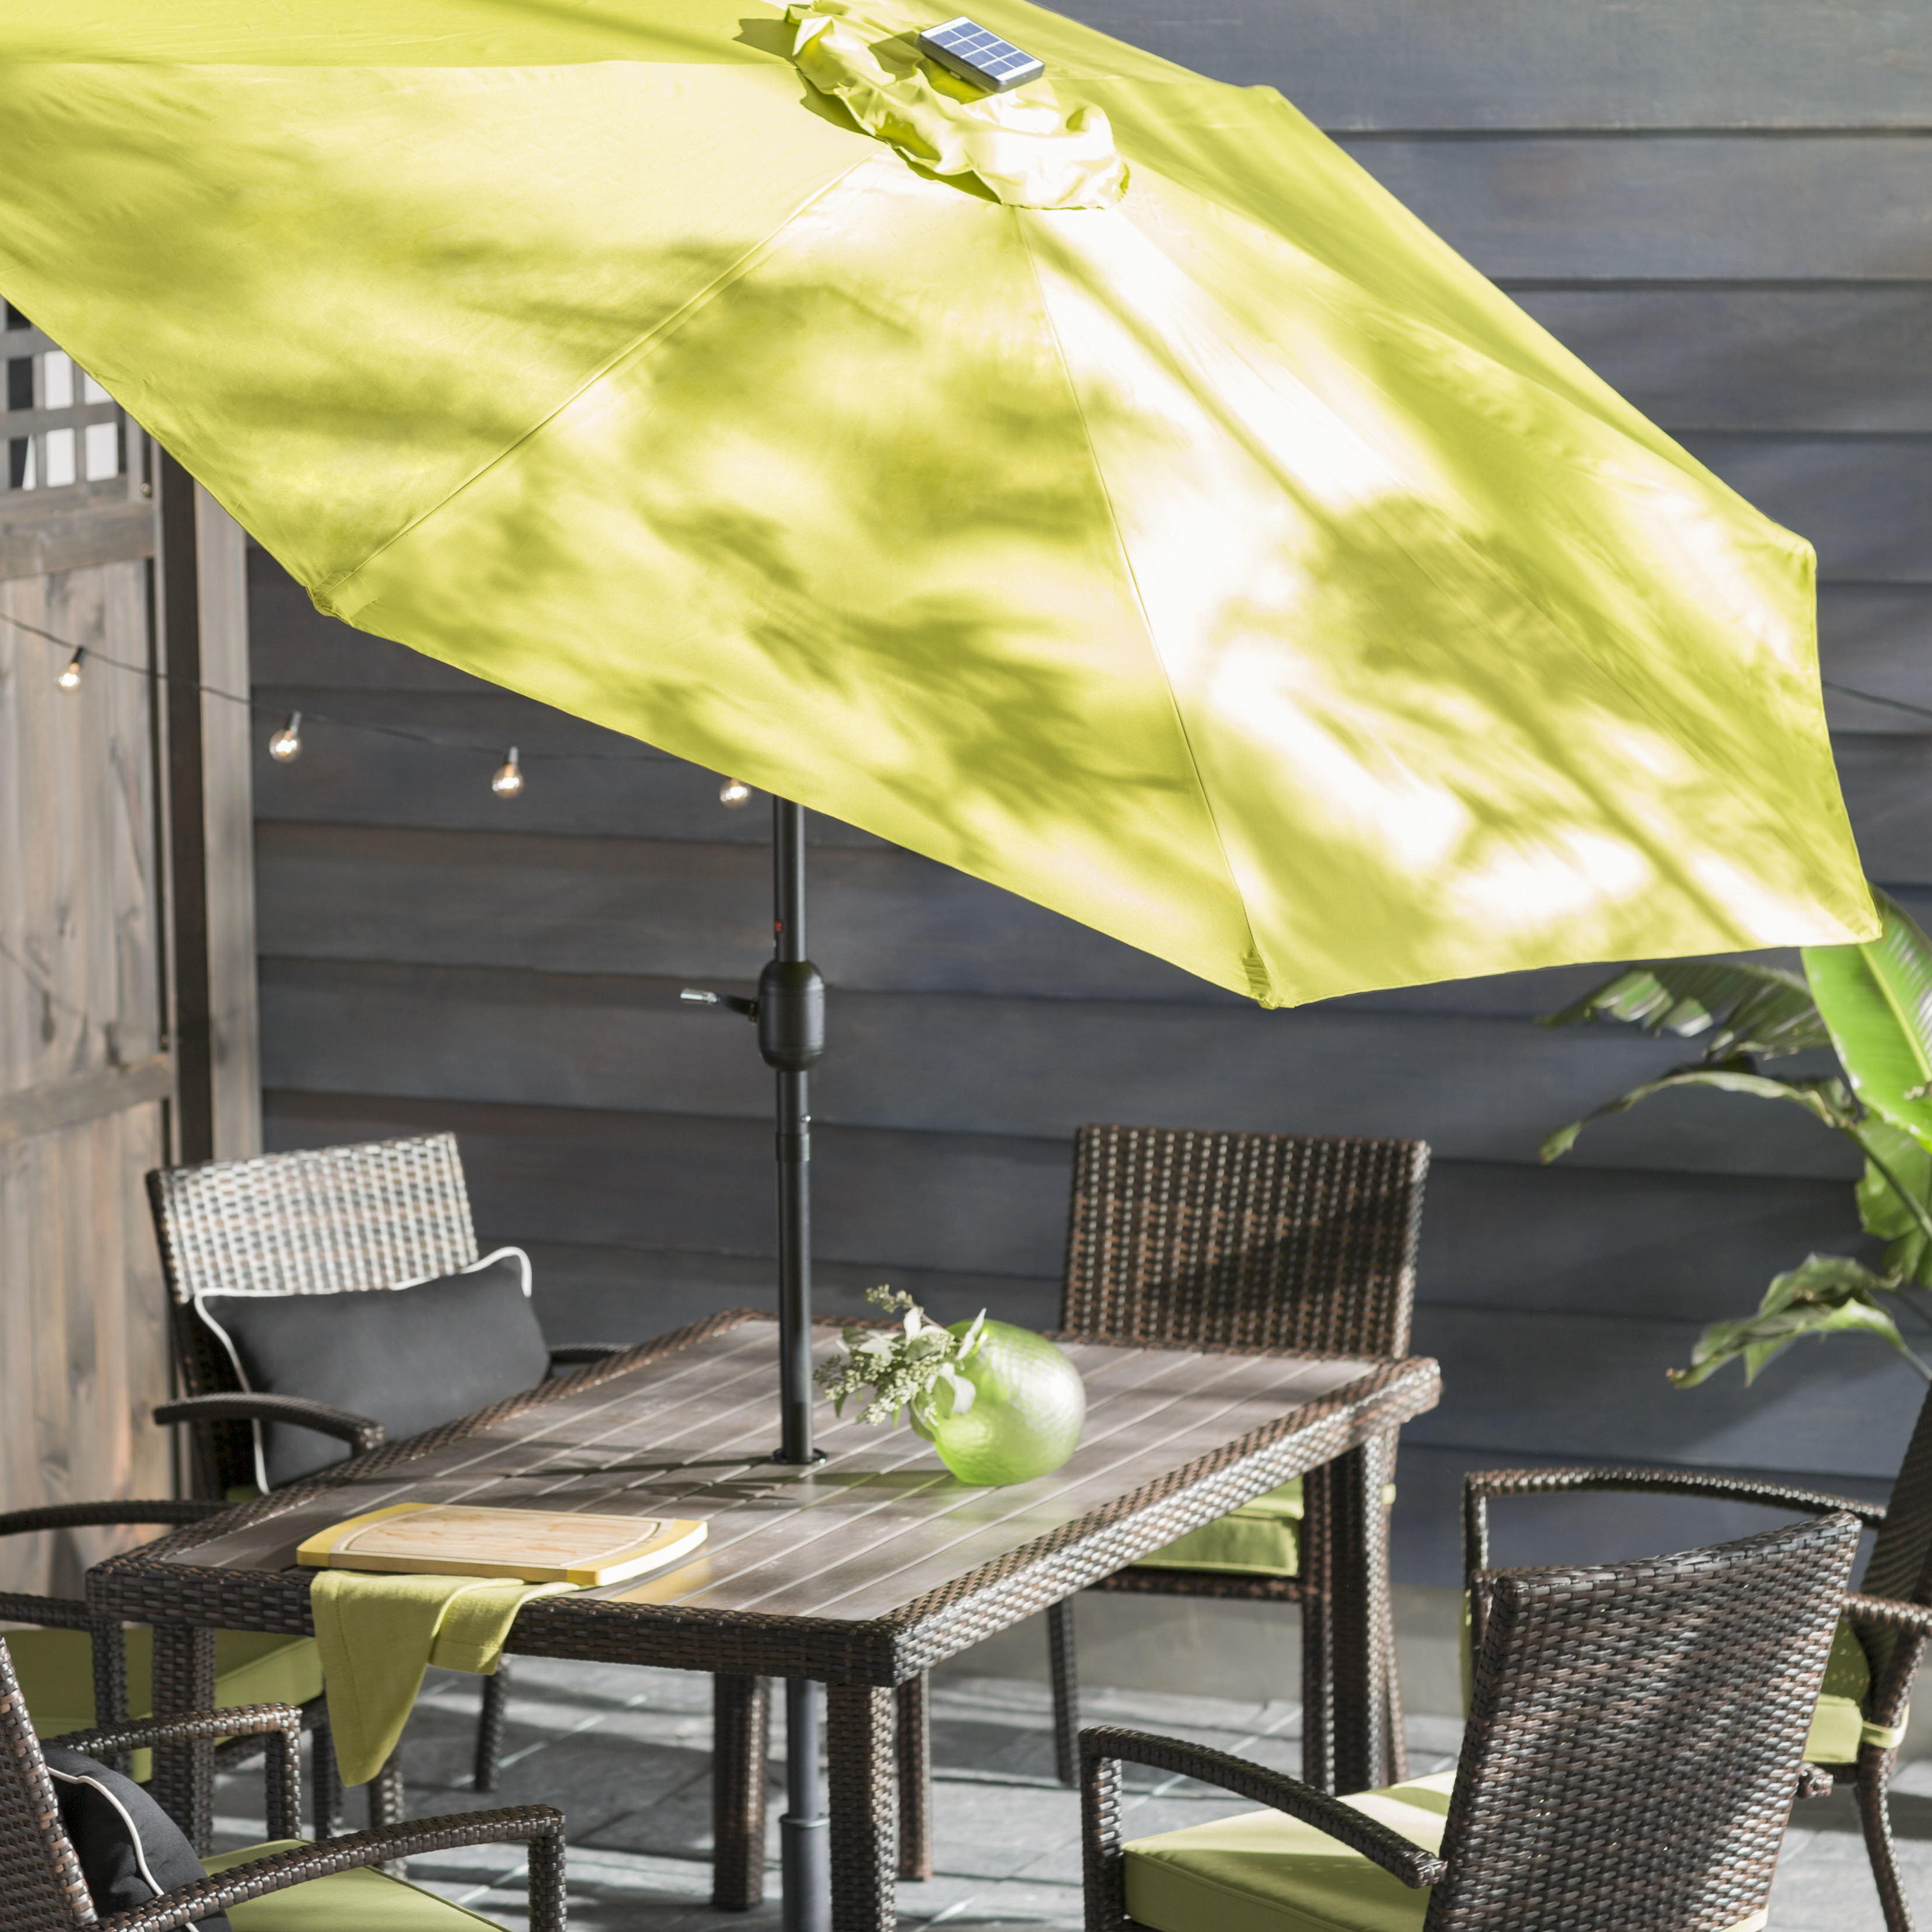 Woll 9' Lighted Market Umbrella With Regard To 2020 Woll Lighted Market Umbrellas (View 10 of 20)